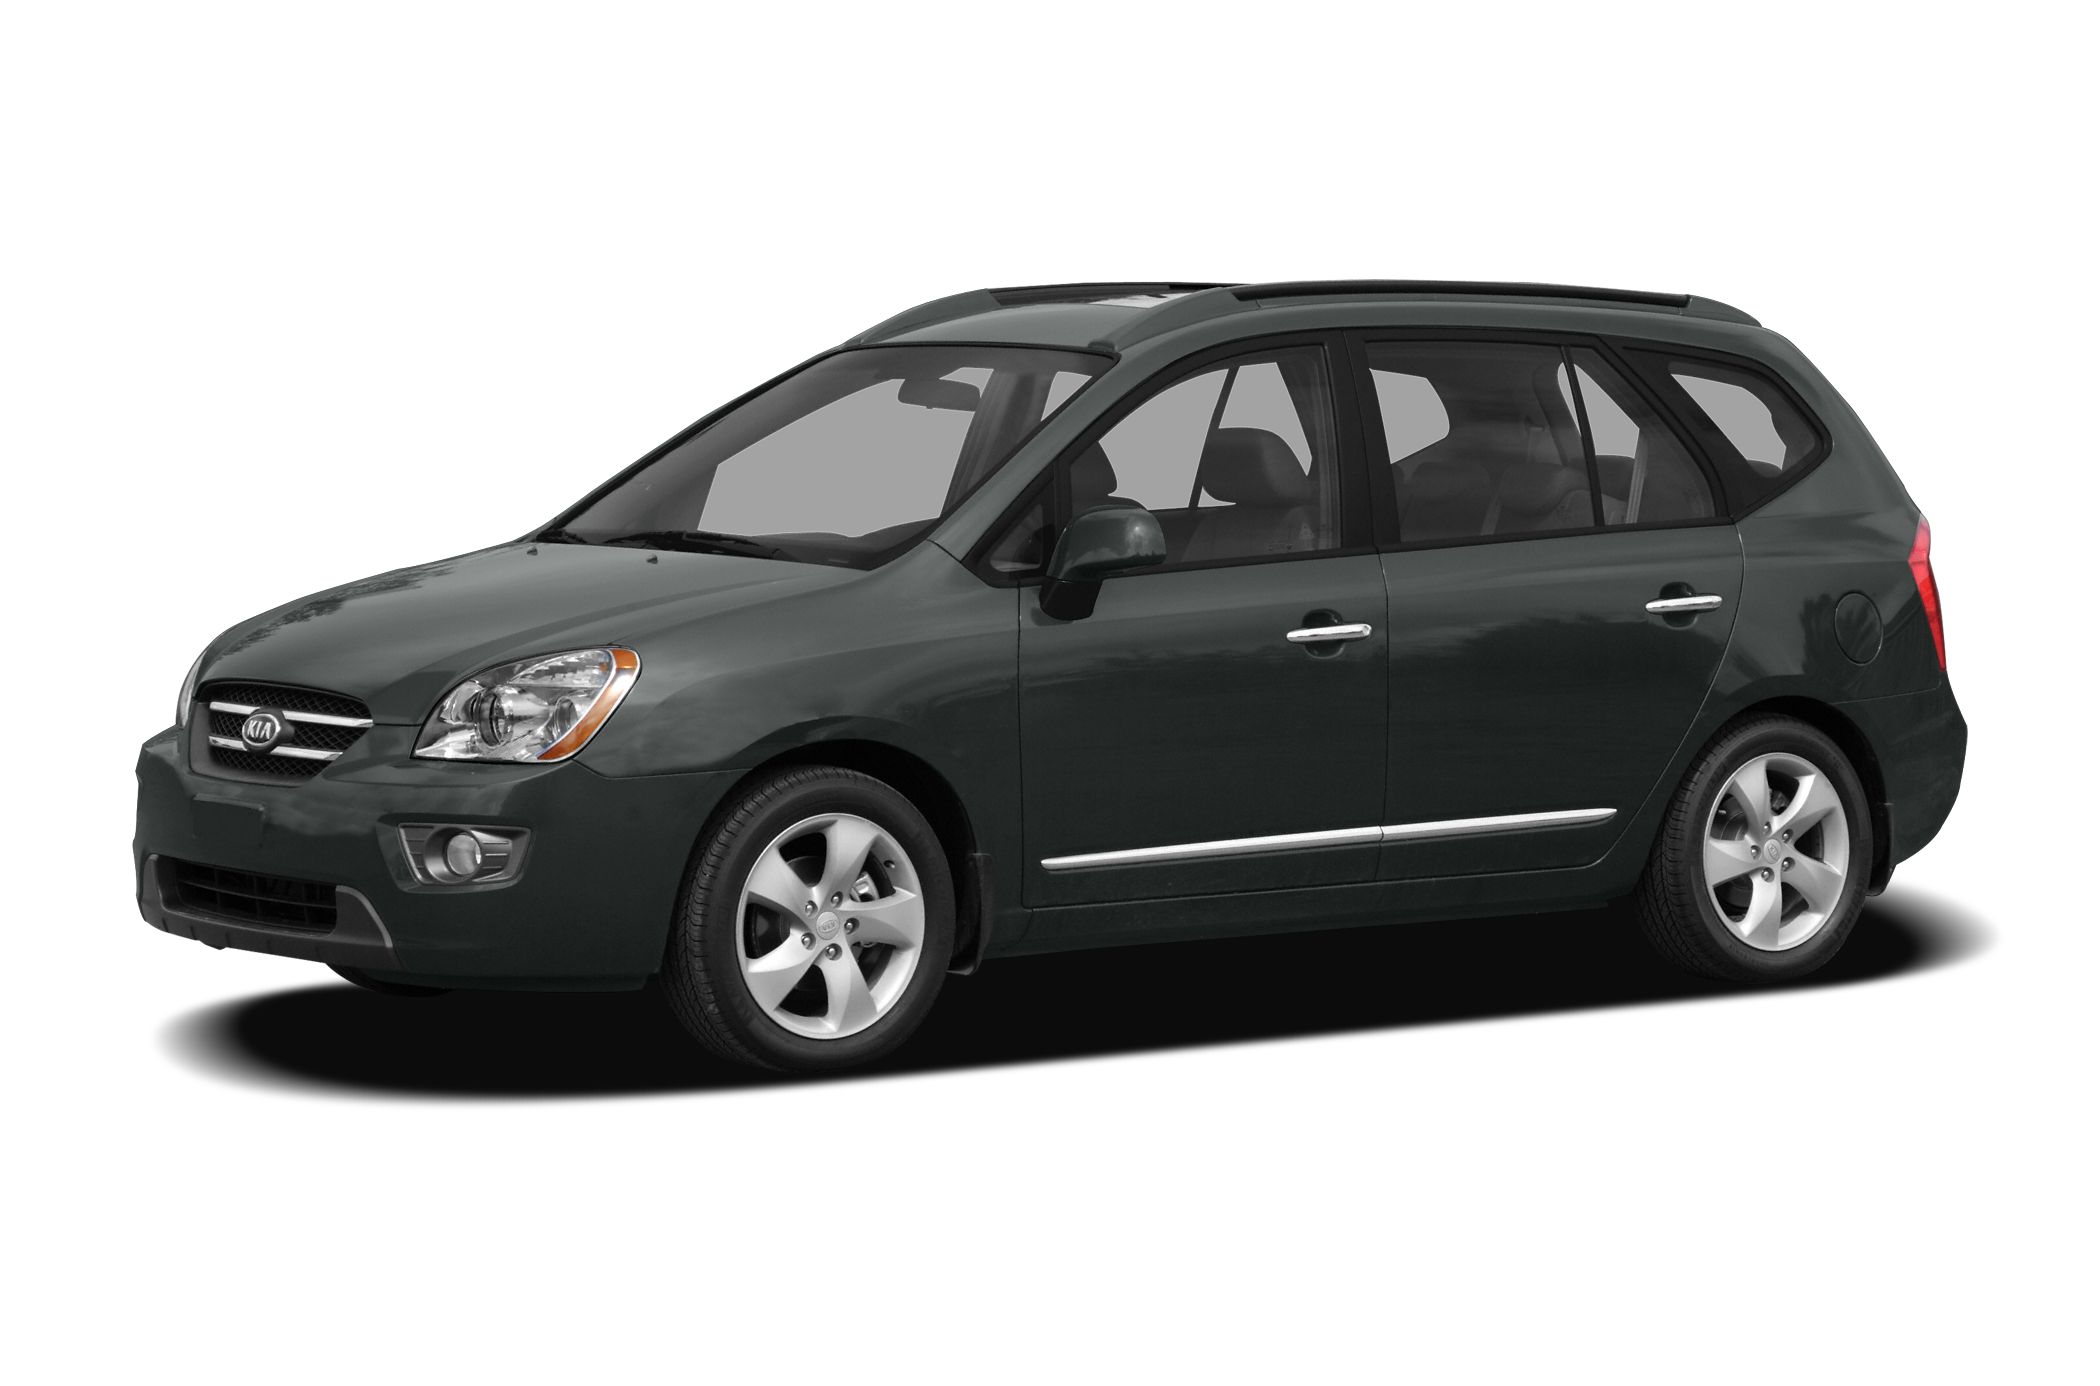 Available in 5 styles: 2009 Kia Rondo 4dr Station Wagon shown